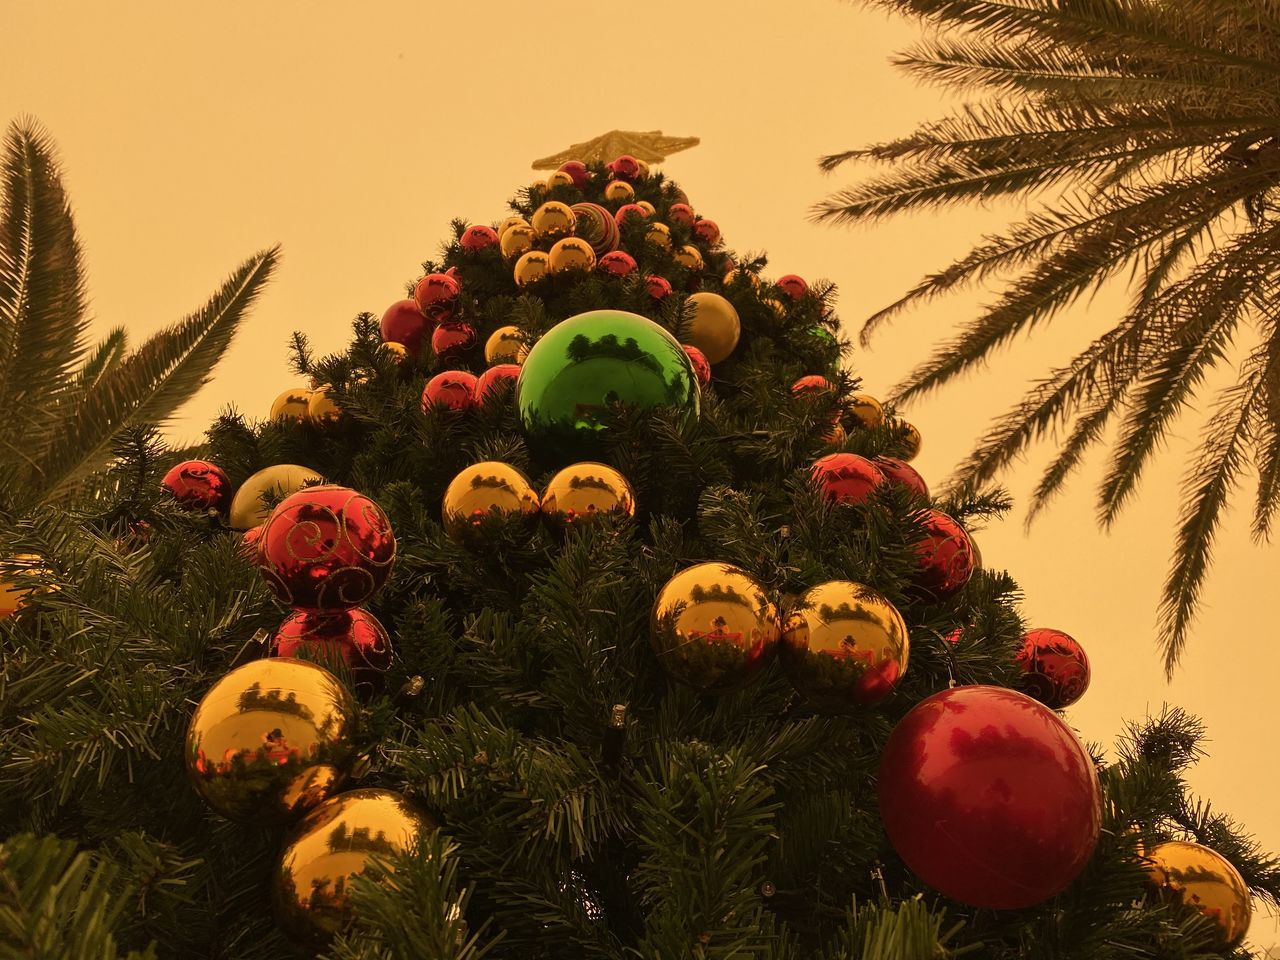 tree, plant, sky, nature, no people, decoration, celebration, holiday, growth, christmas decoration, christmas, low angle view, christmas ornament, palm tree, outdoors, christmas tree, tropical climate, holiday - event, green color